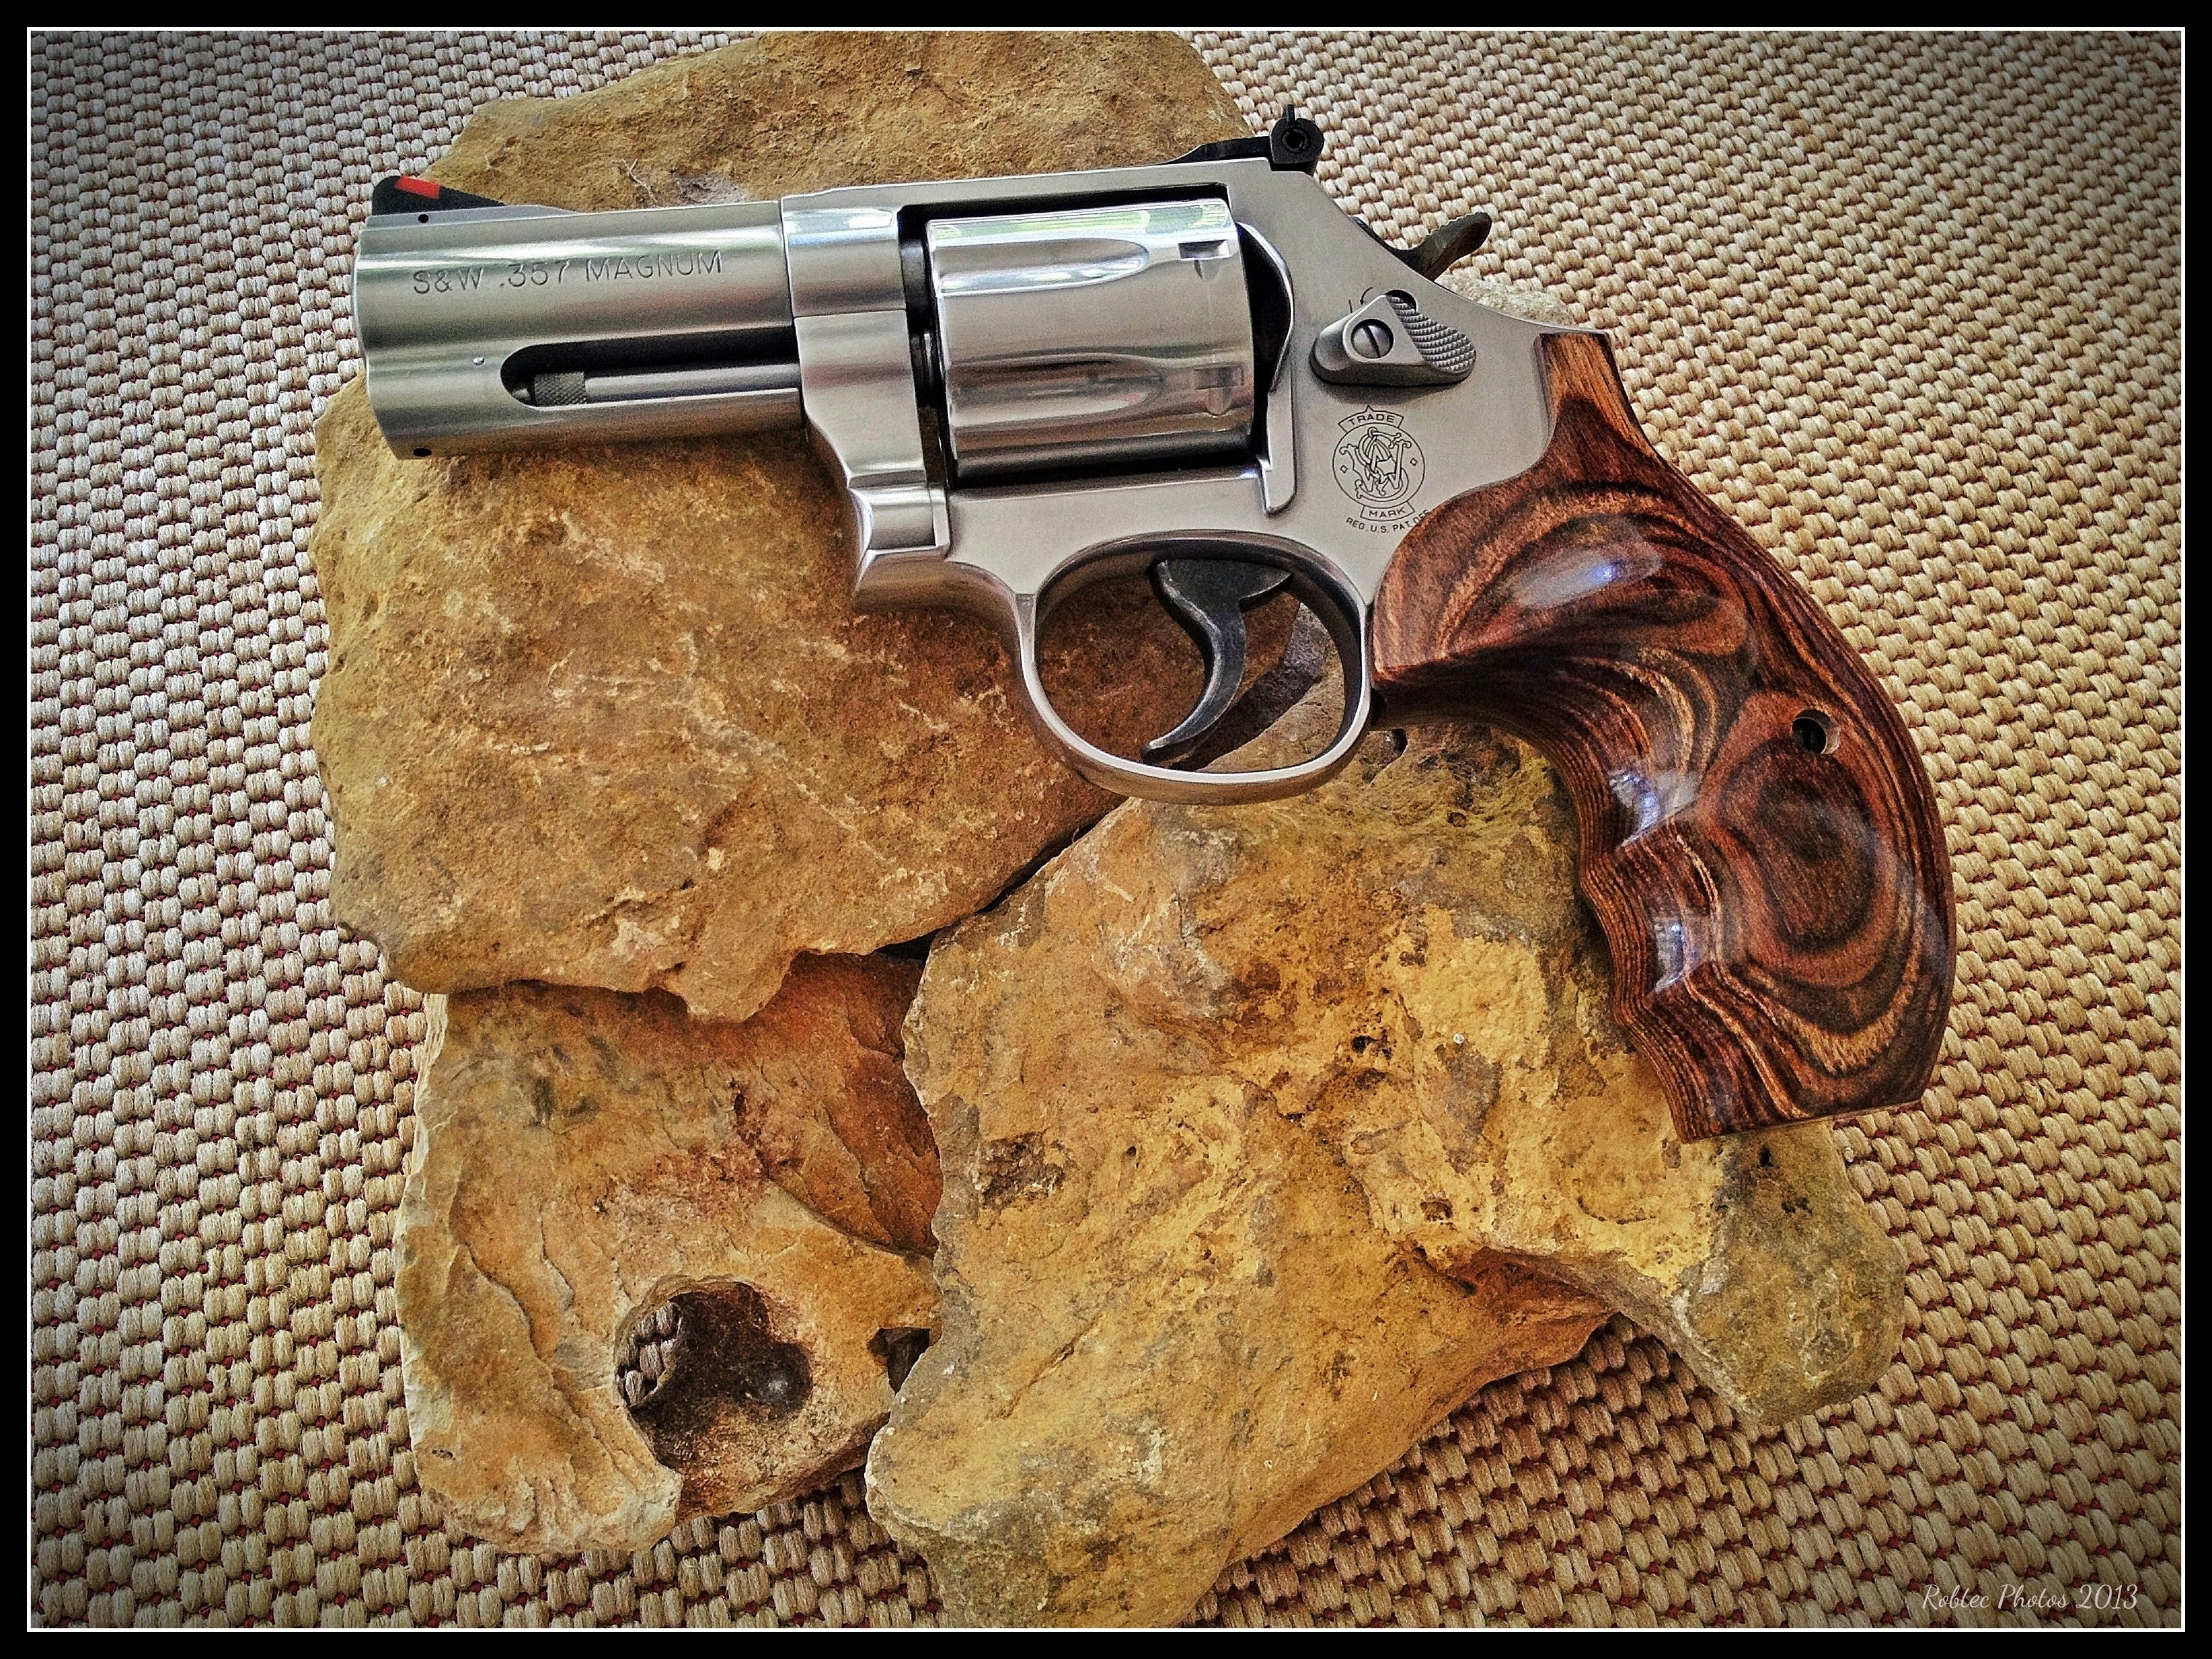 Nothing Quite As Beautiful A Good Revolver Smith And Wesson 686 Plus With Altamont Grips